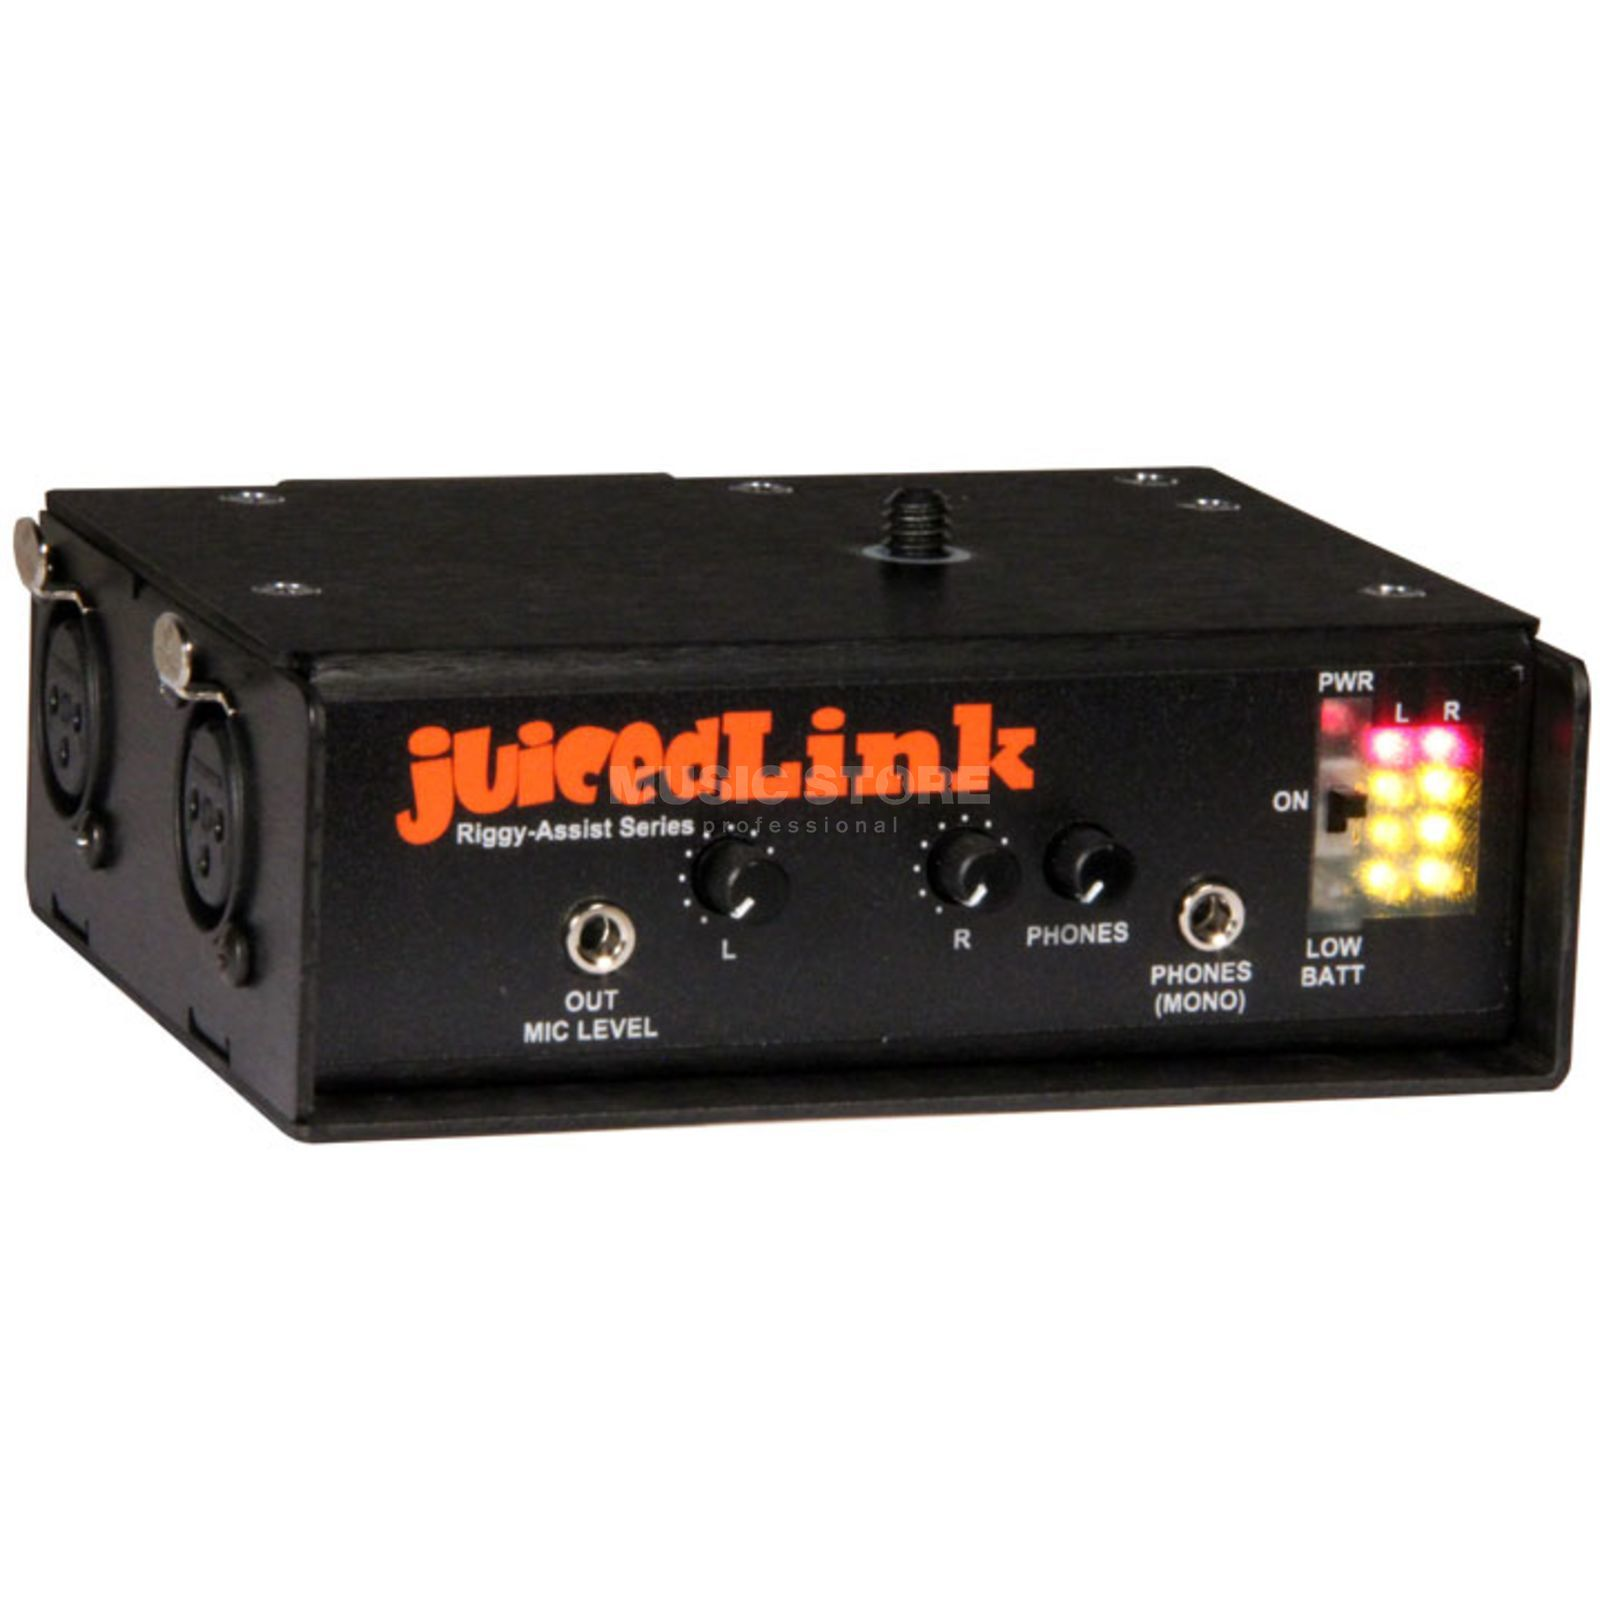 Juiced Link RA222 Riggy-Assist 2 XLR/+48V/HP für Kameras Produktbild